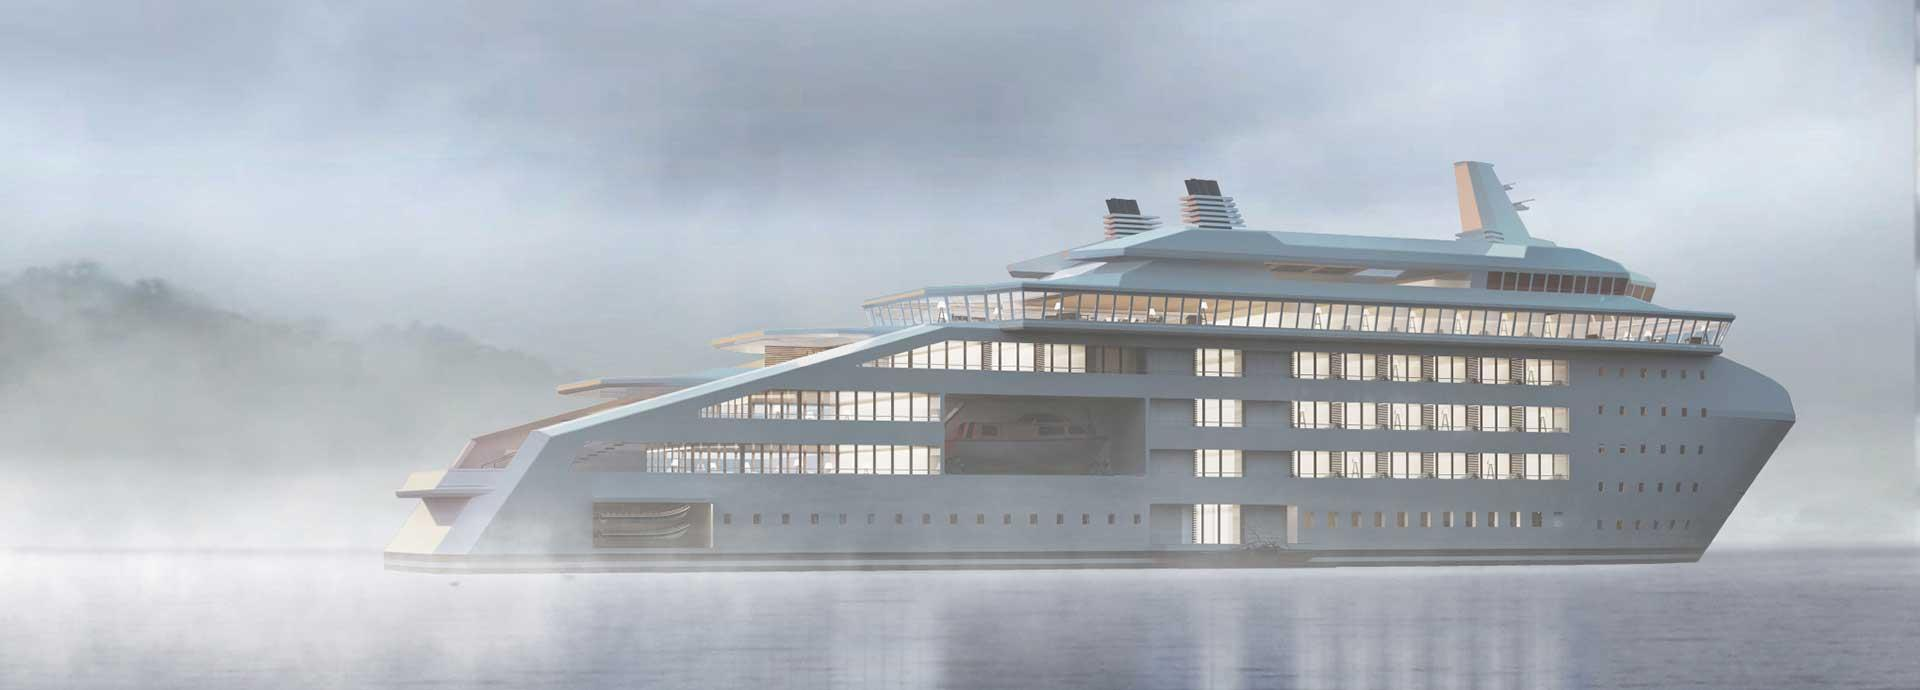 Unparalleled luxury on the HY seas